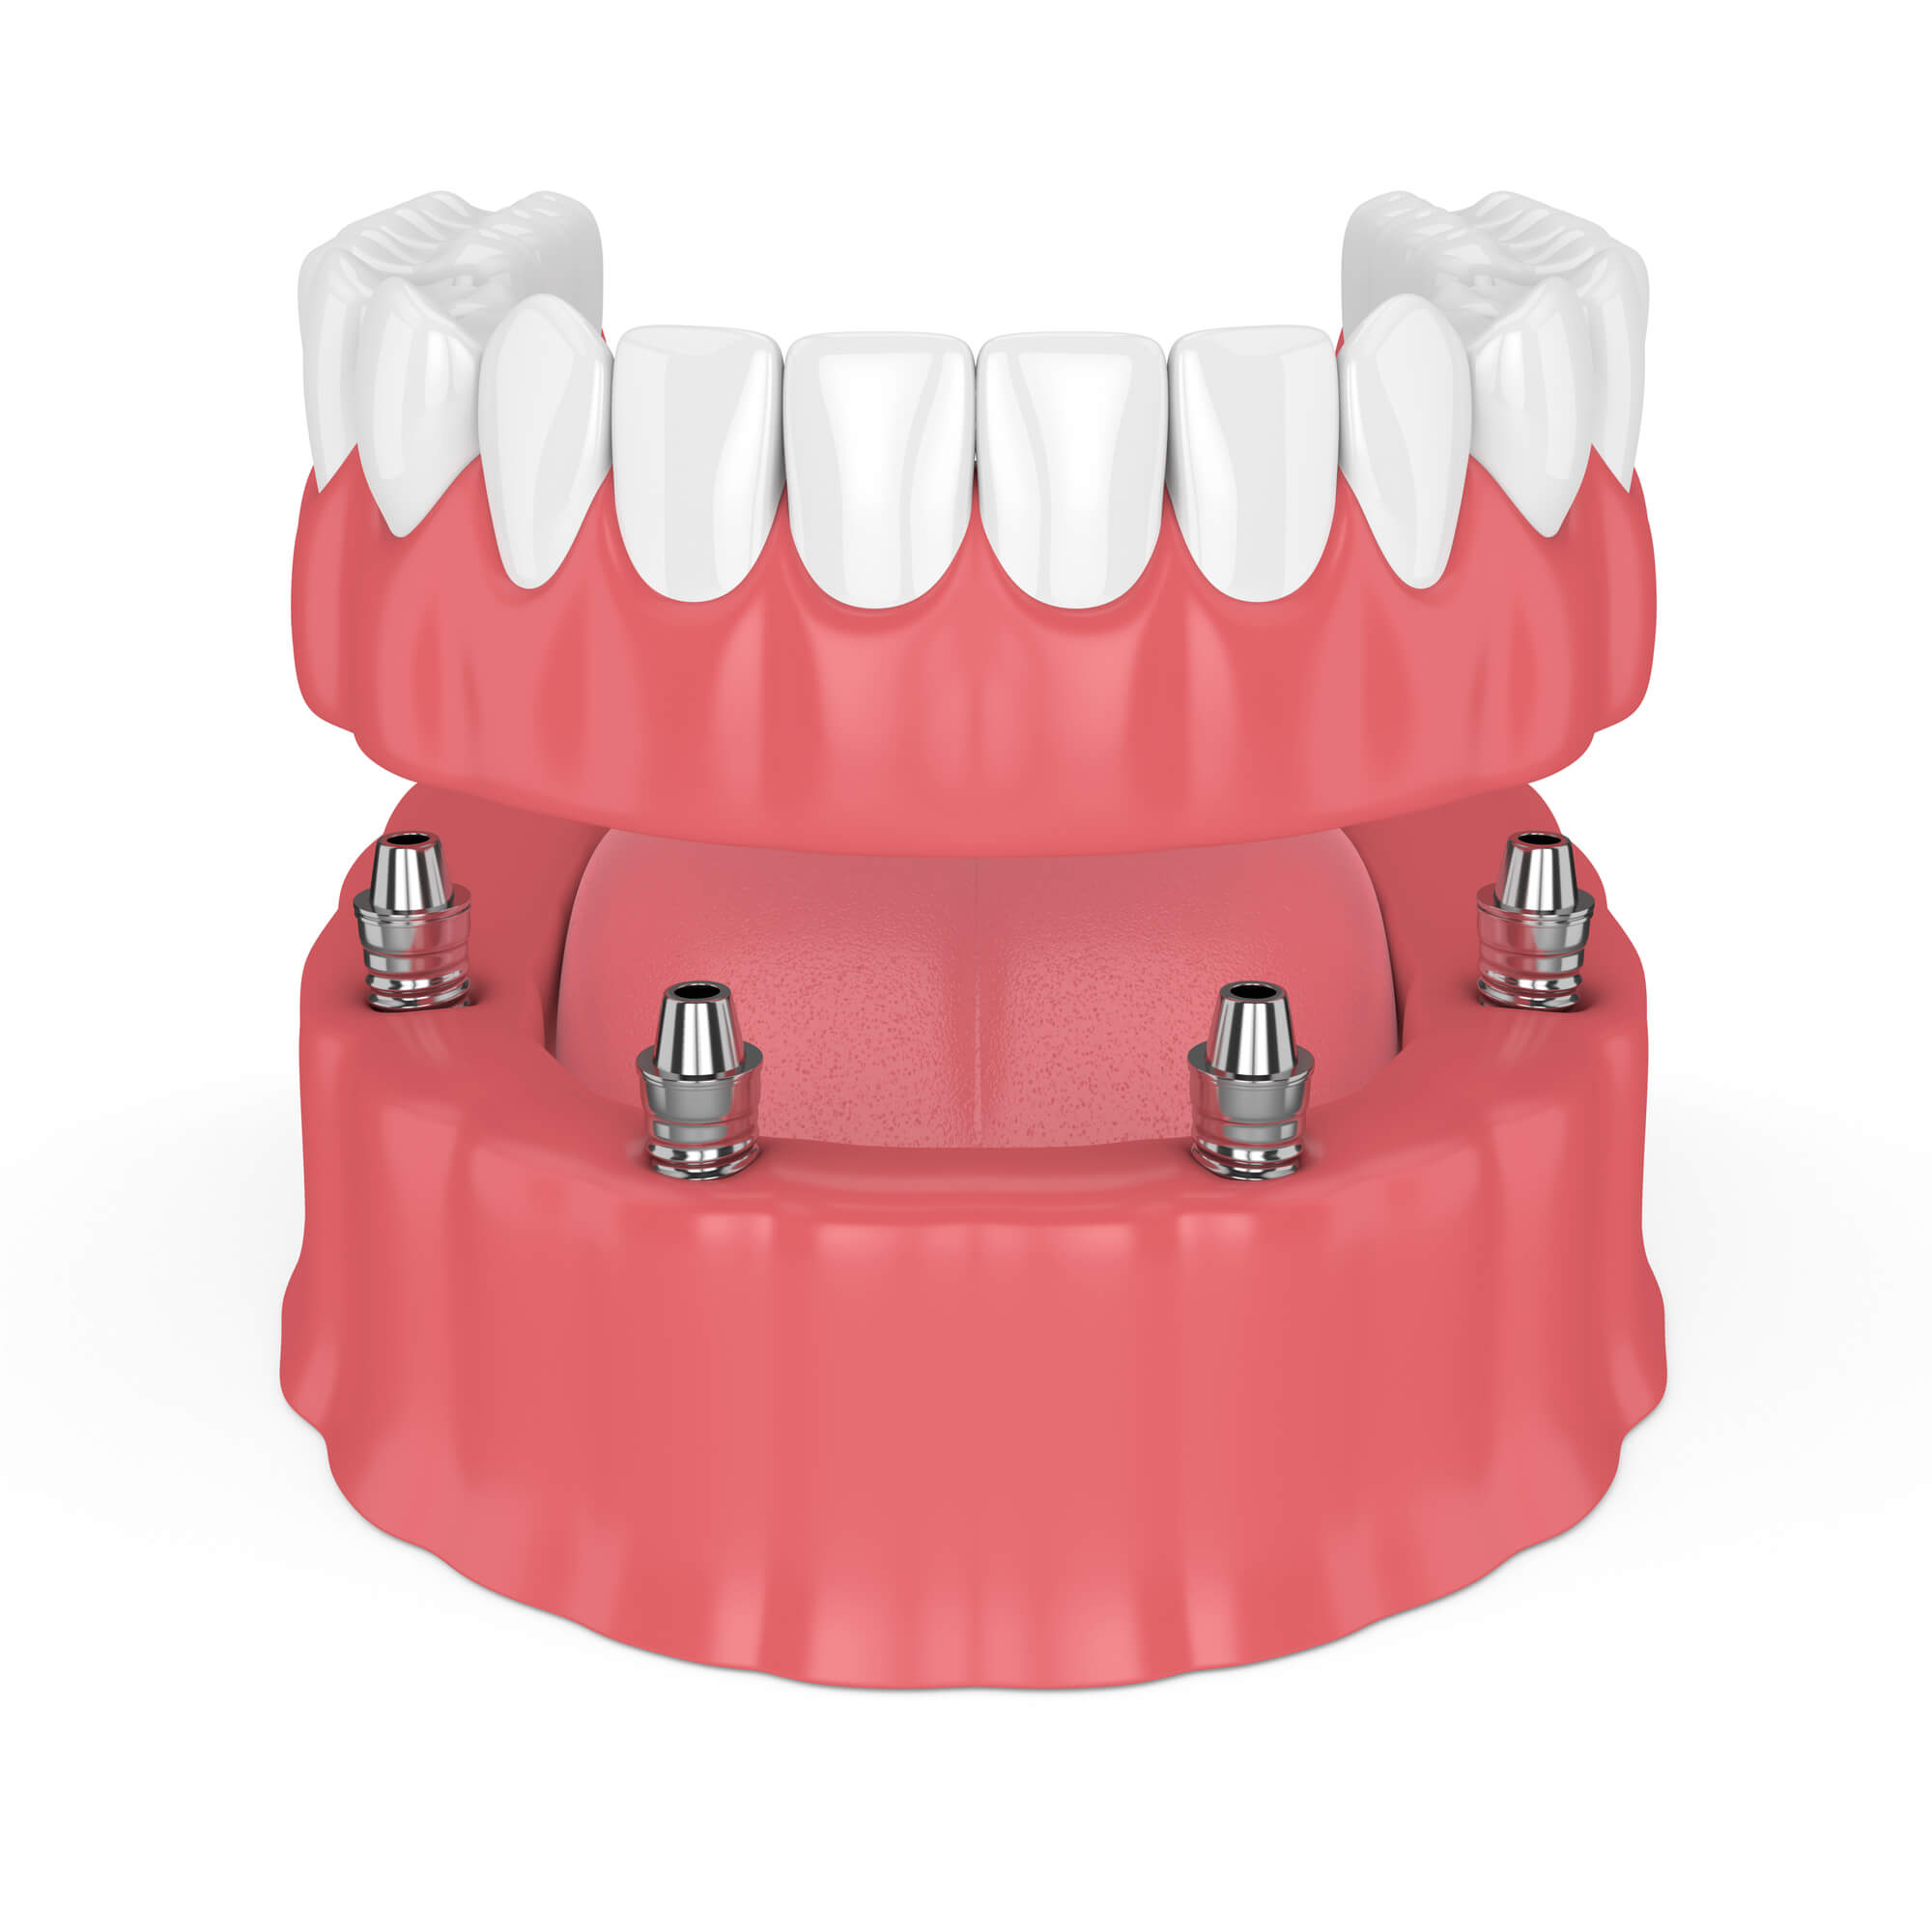 Dentures Palm Beach Gardens | 2 Main Types of Denture Implants